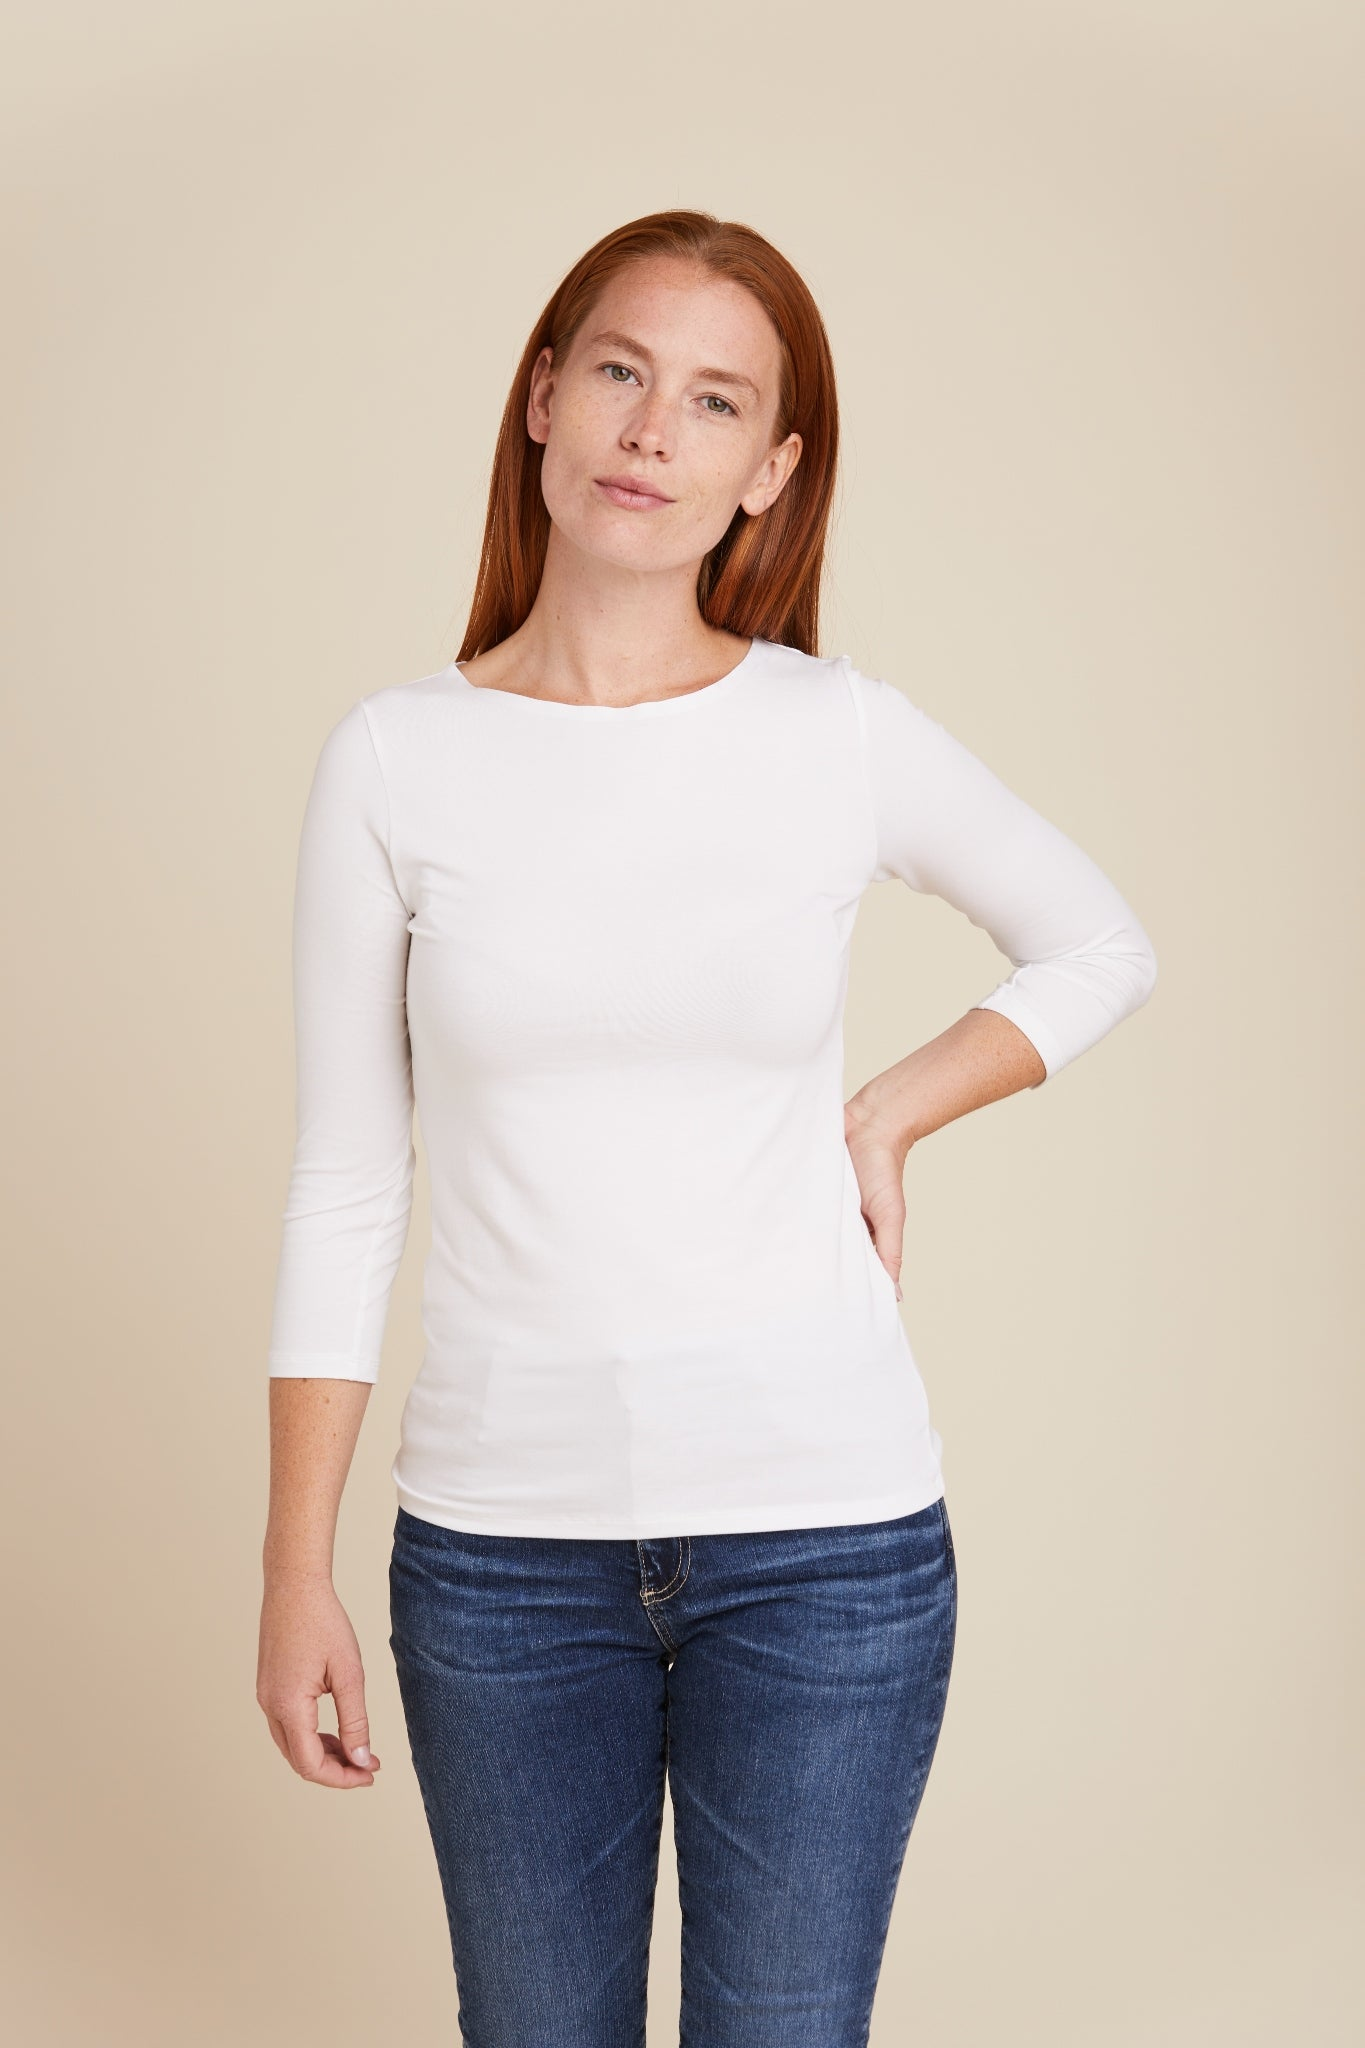 SOFT TOUCH LASER CUT 3/4 SLEEVE BOATNECK - MAJESTIC FILATURES